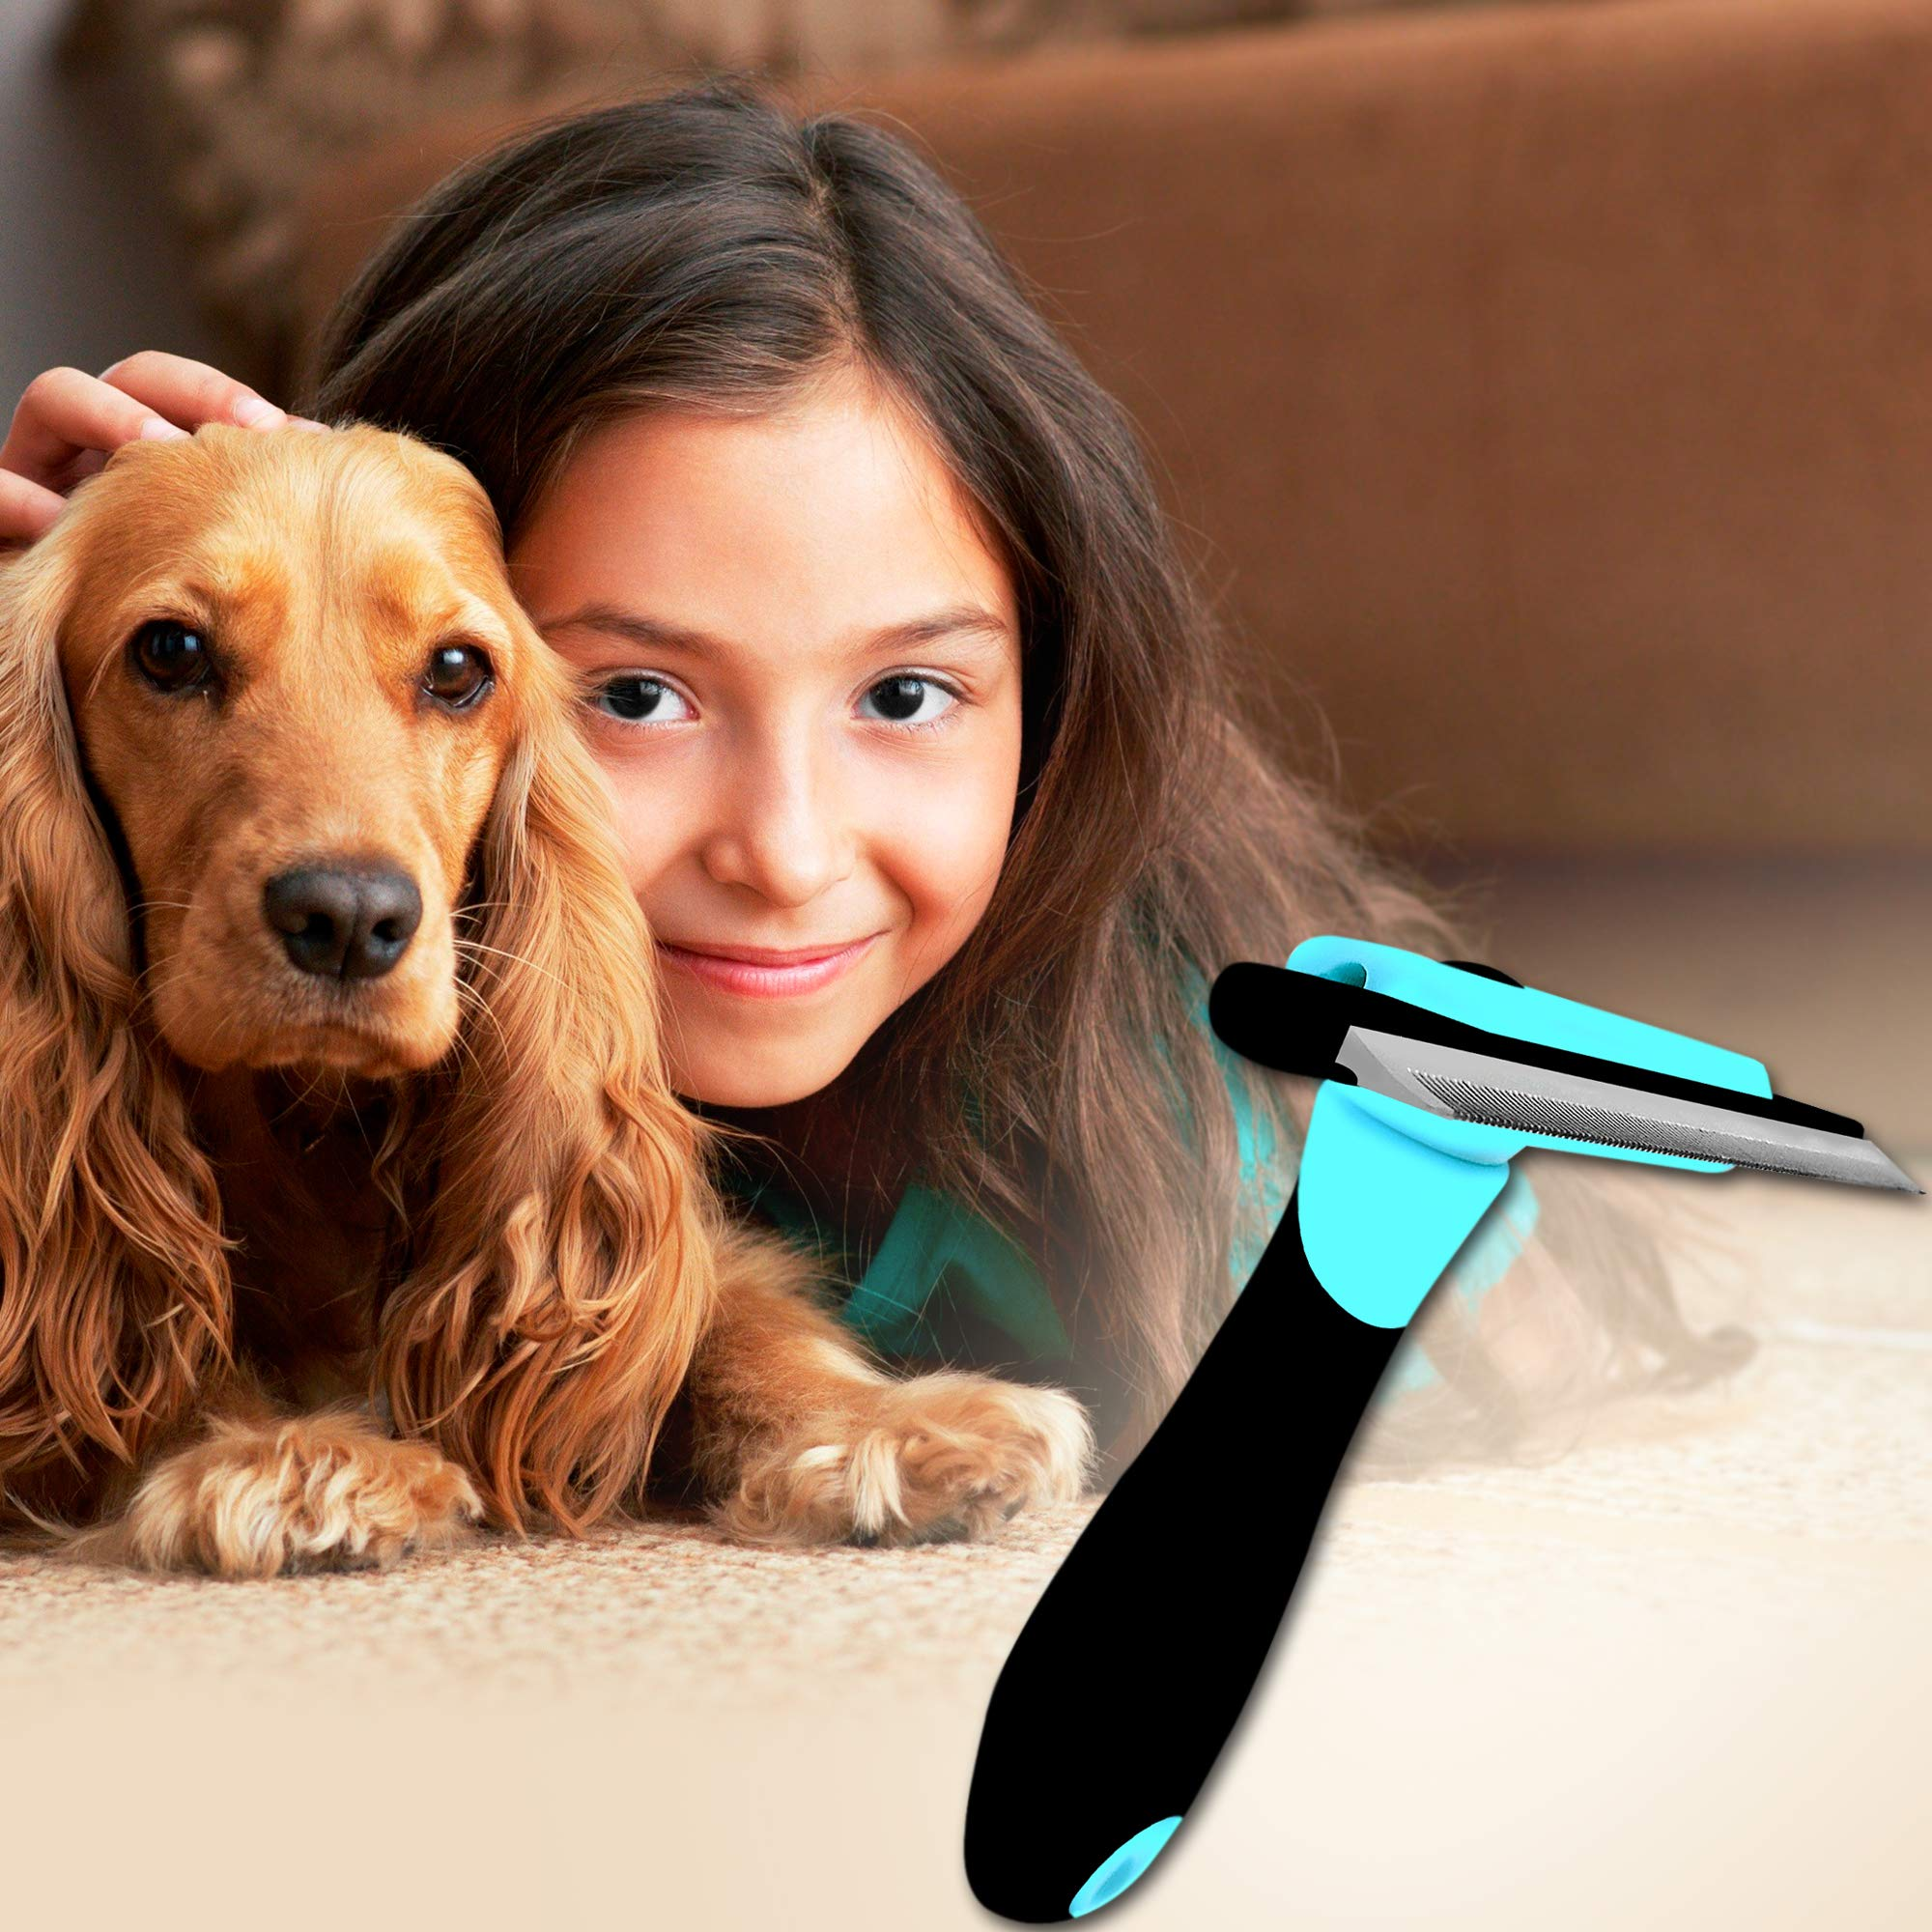 DakPets Deshedding Brush-Dog Hair & Cat Hair Shedding Tool-Effective Grooming Tool for Cats Dogs with Short Medium Long Fur-Reduces Pet Hair Shed by Up to 90% by DakPets